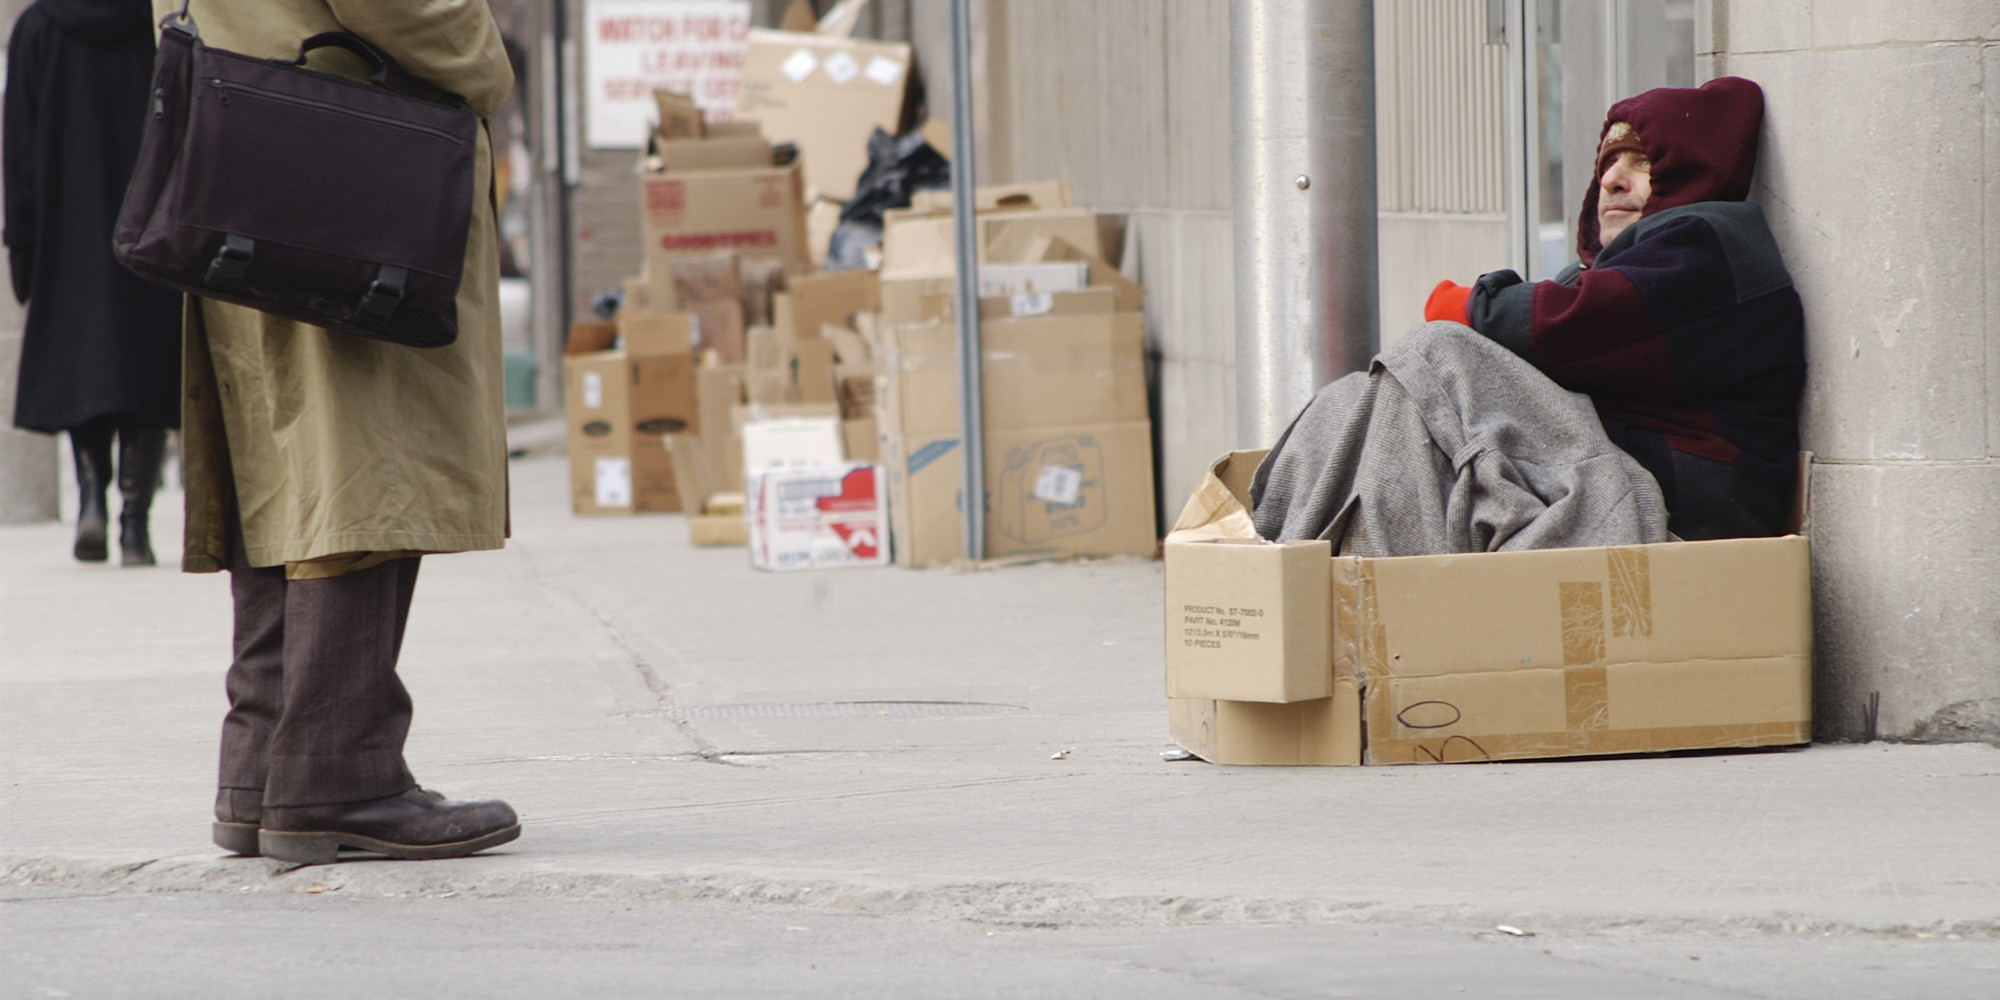 England's 'Homelessness Crisis' On The Rise, Campaigners ...